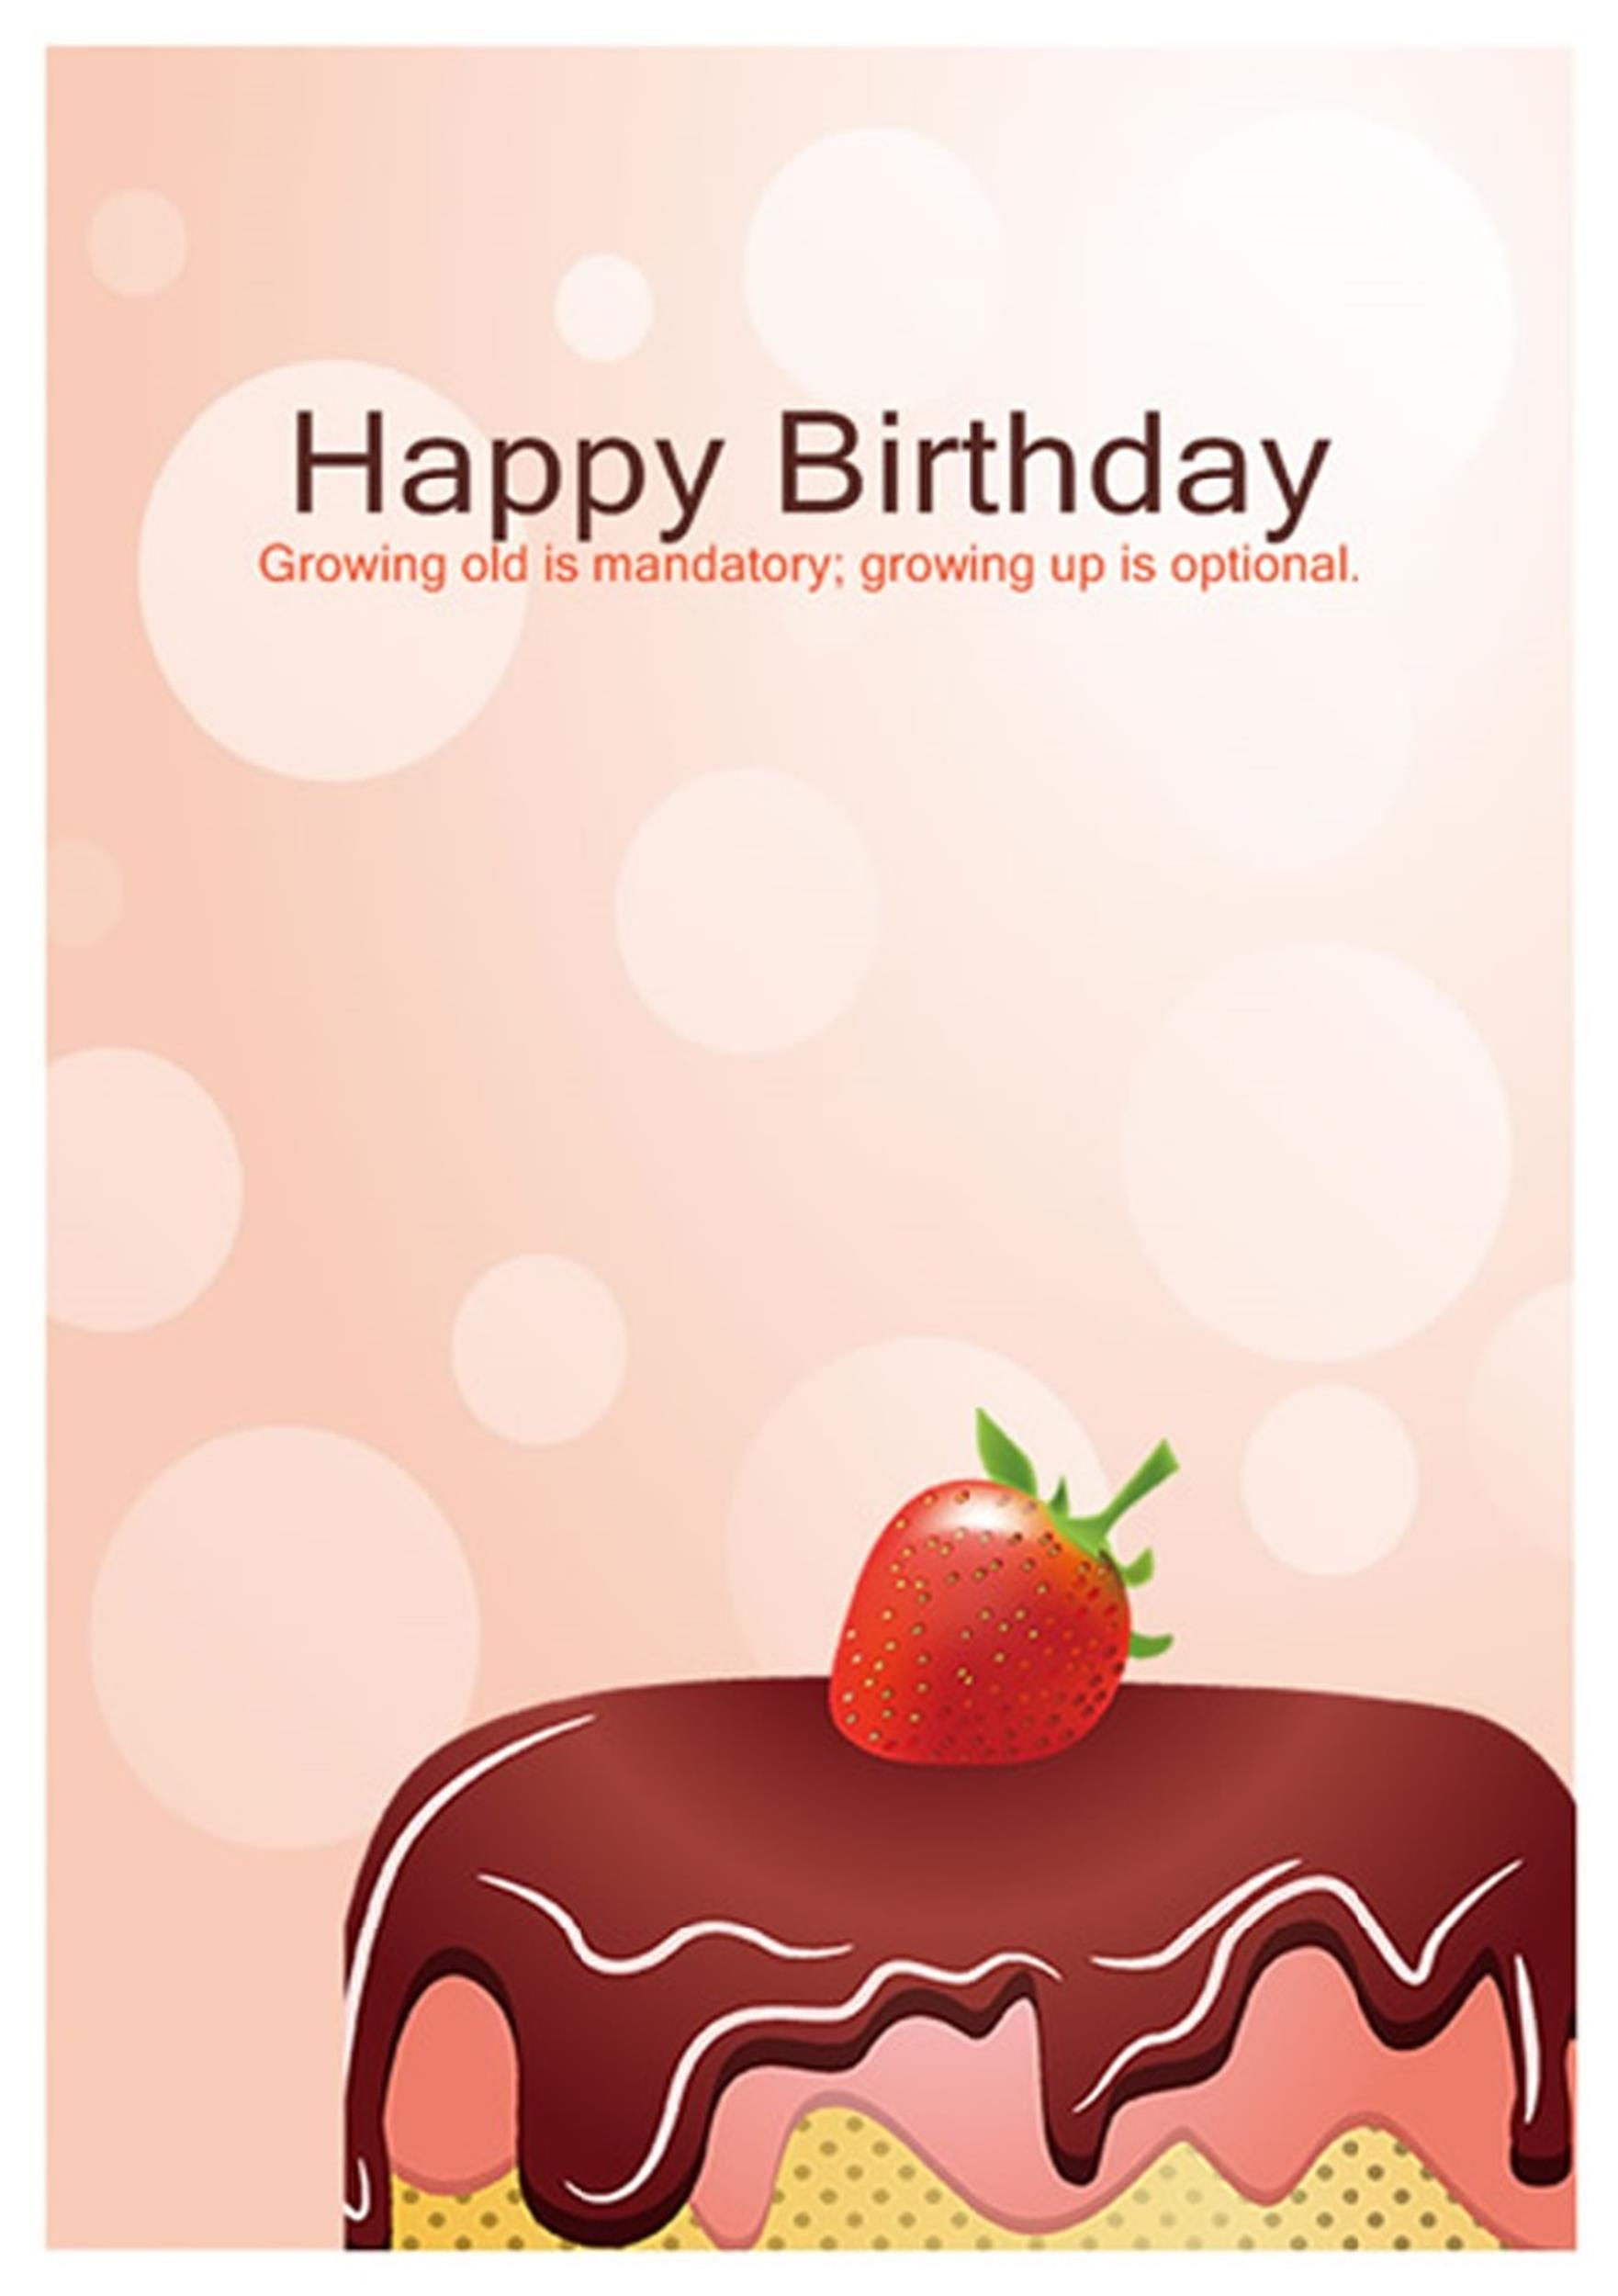 Free Birthday Card Templates  Happy Birthday Cards Templates